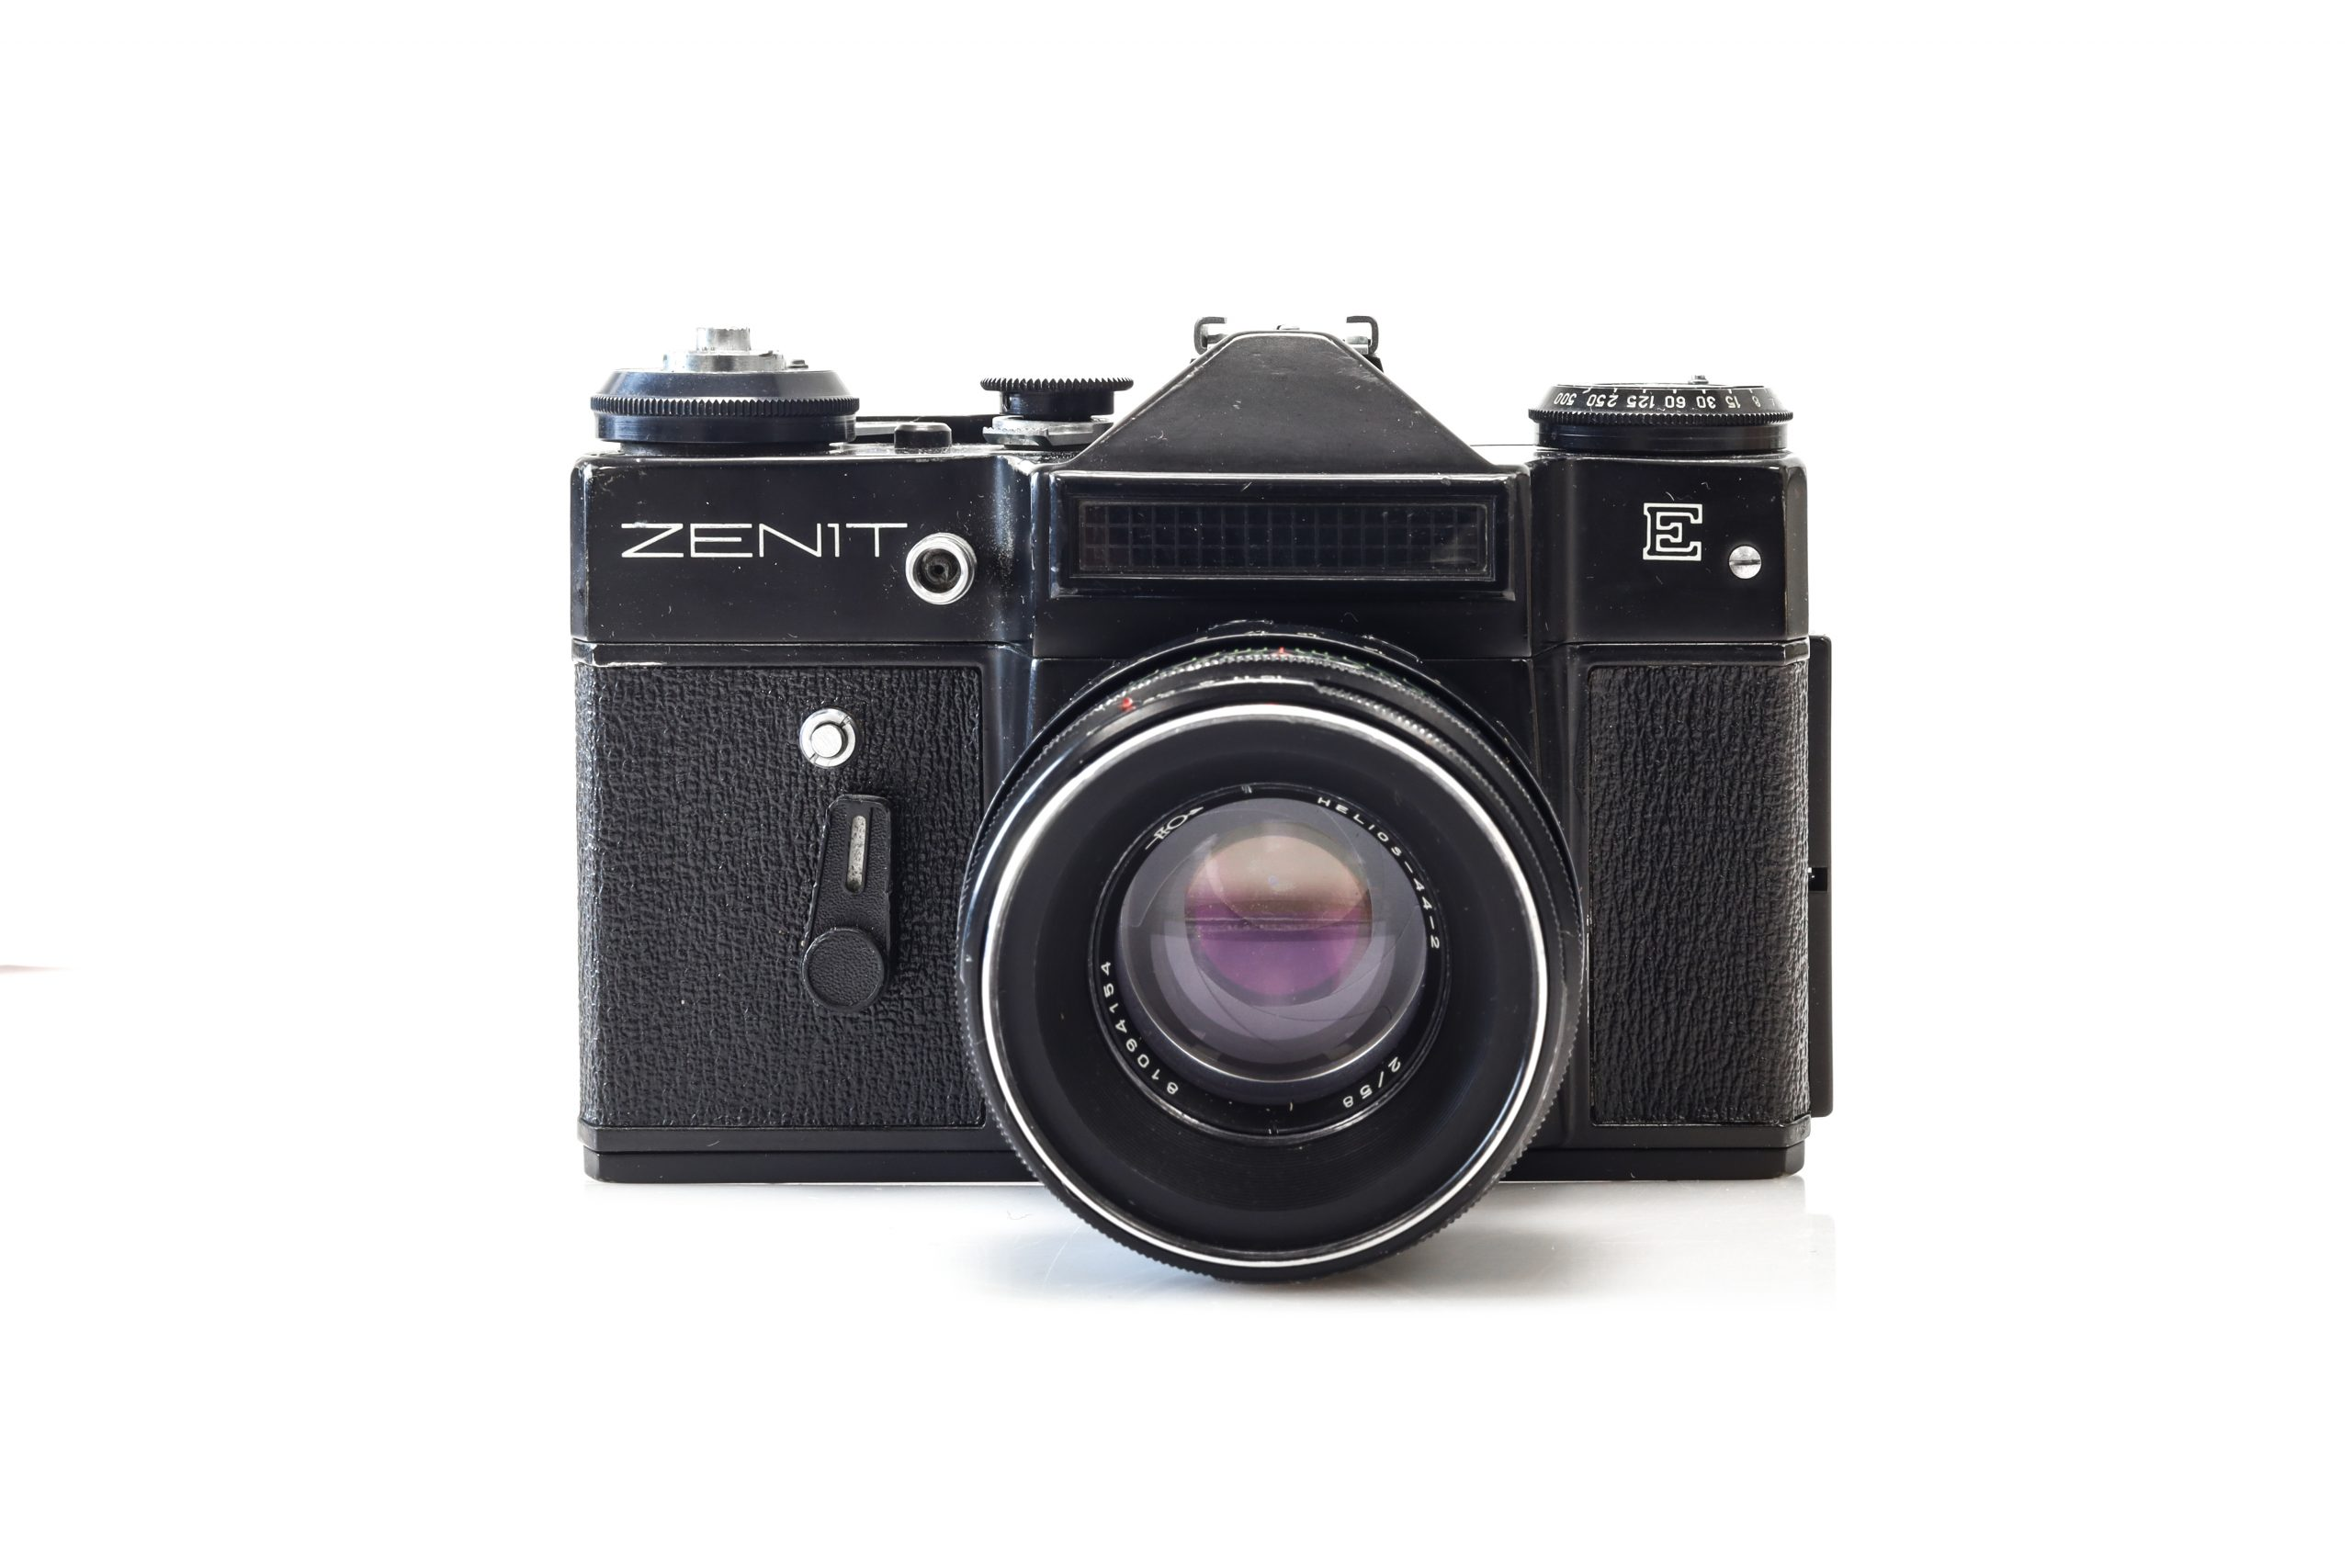 Stunning Zenit E 35mm Soviet Film Camera with Helios 44-2 Lens